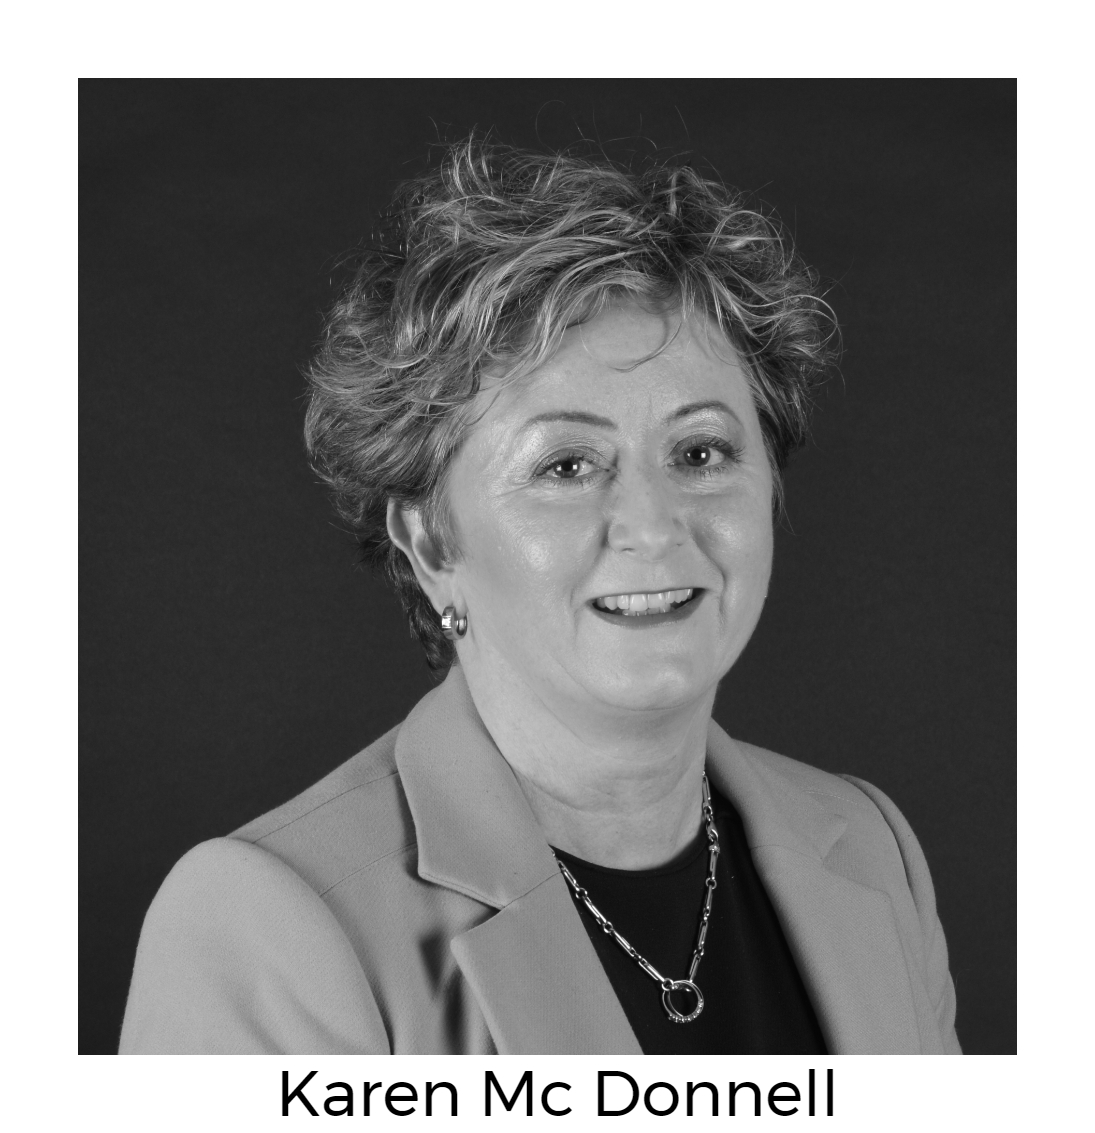 Karen Mc Donnell